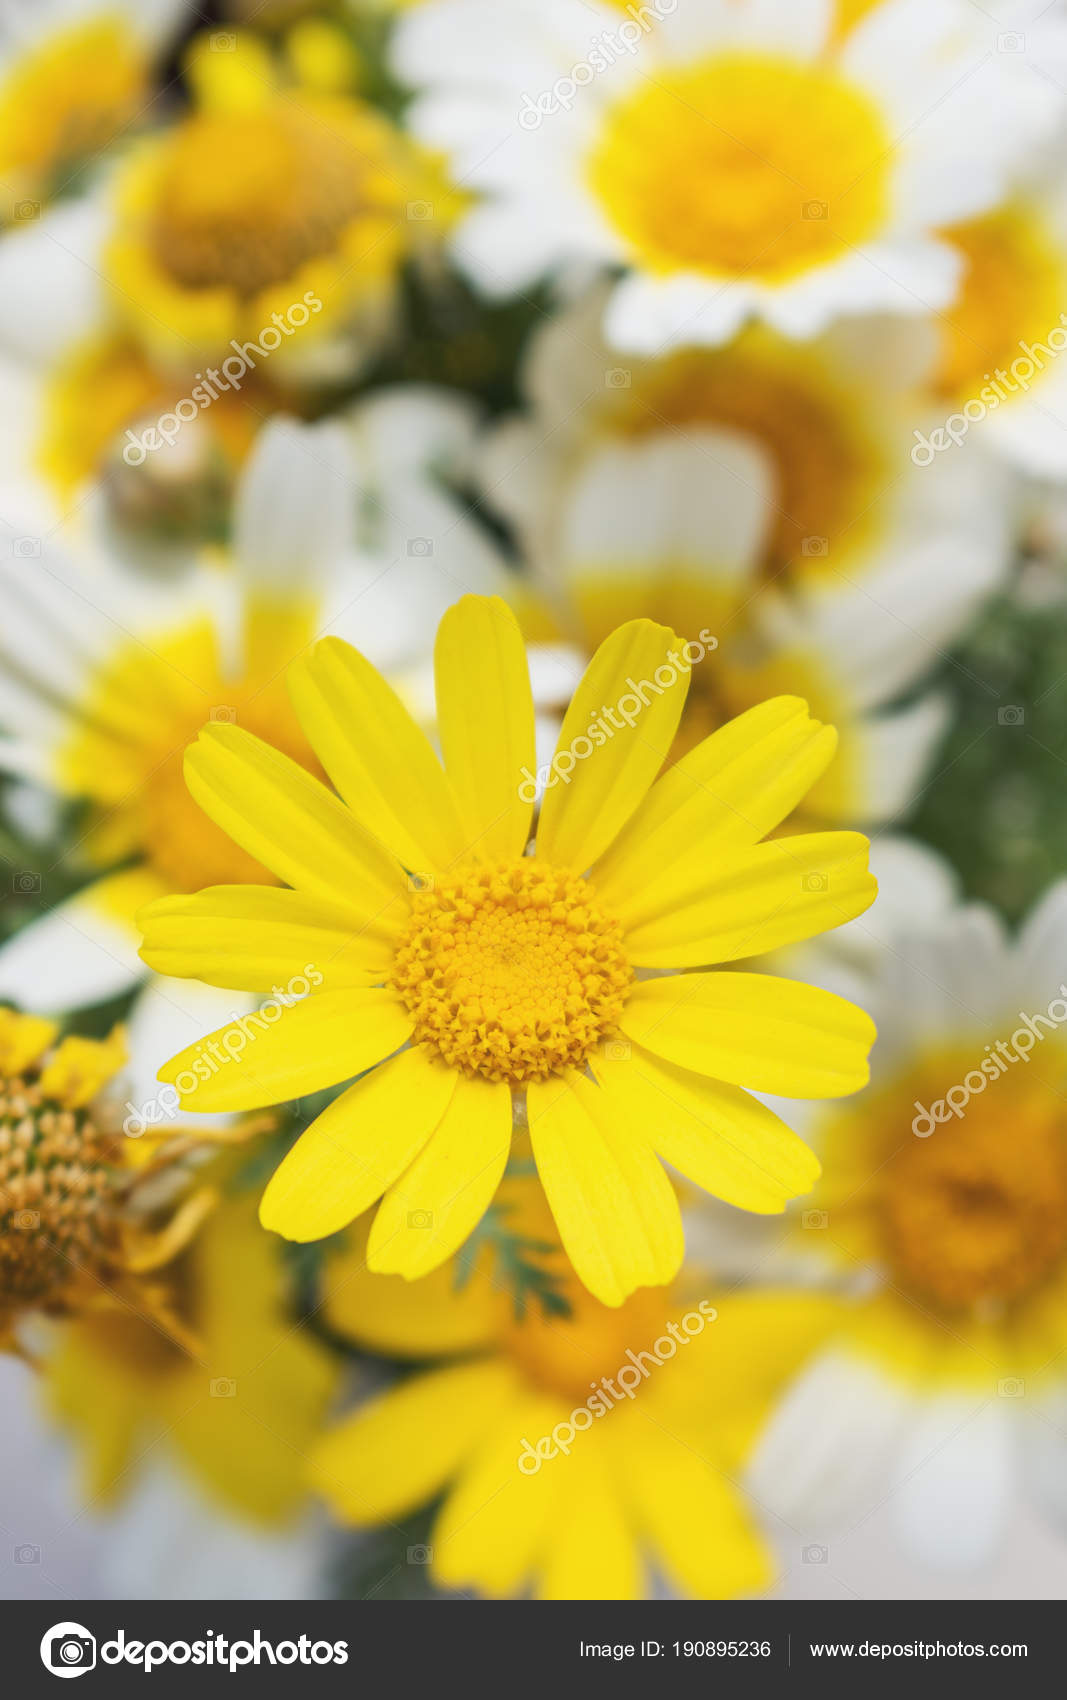 White And Yellow Daisies Flowers In Bright Sun Light Stock Photo